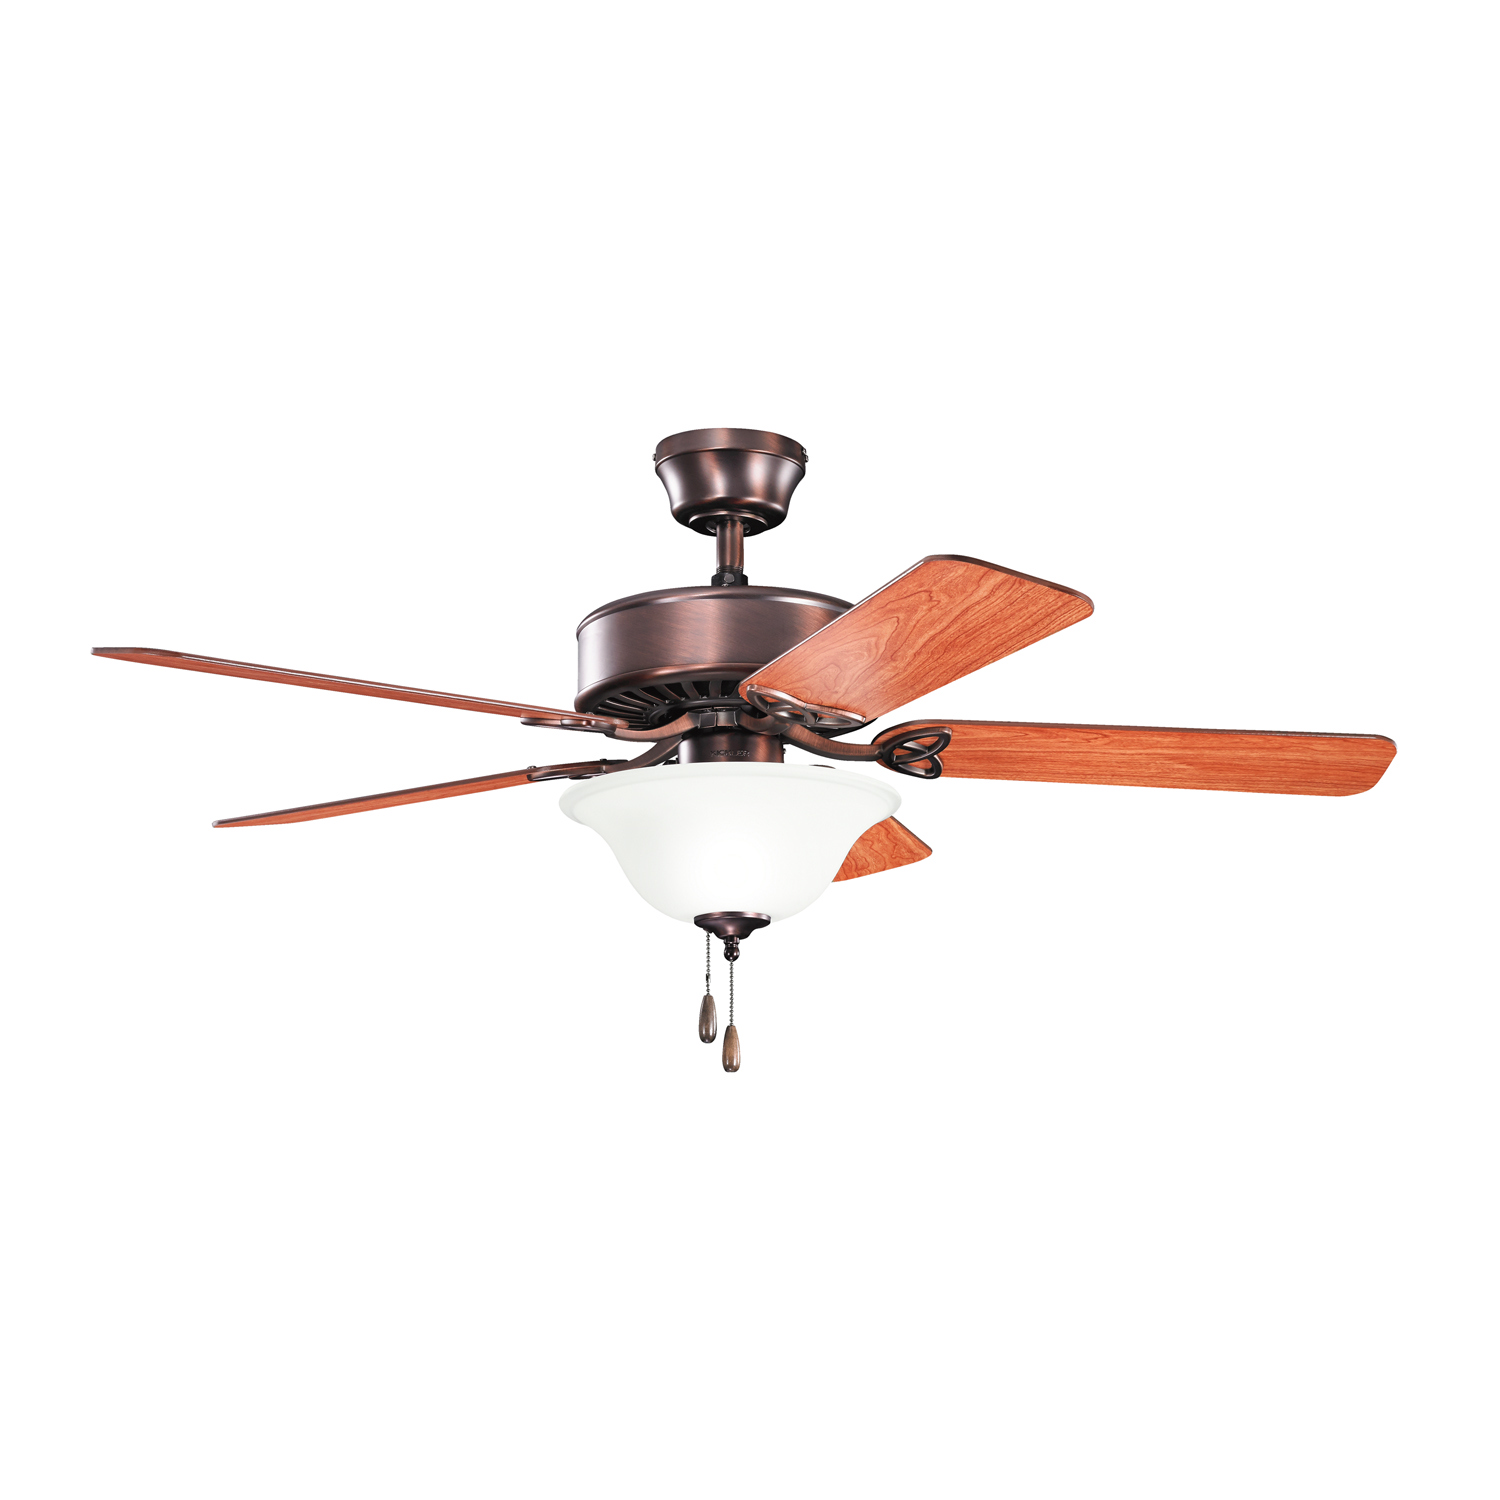 50 inchCeiling Fan from the ES collection by Kichler 330103OBB